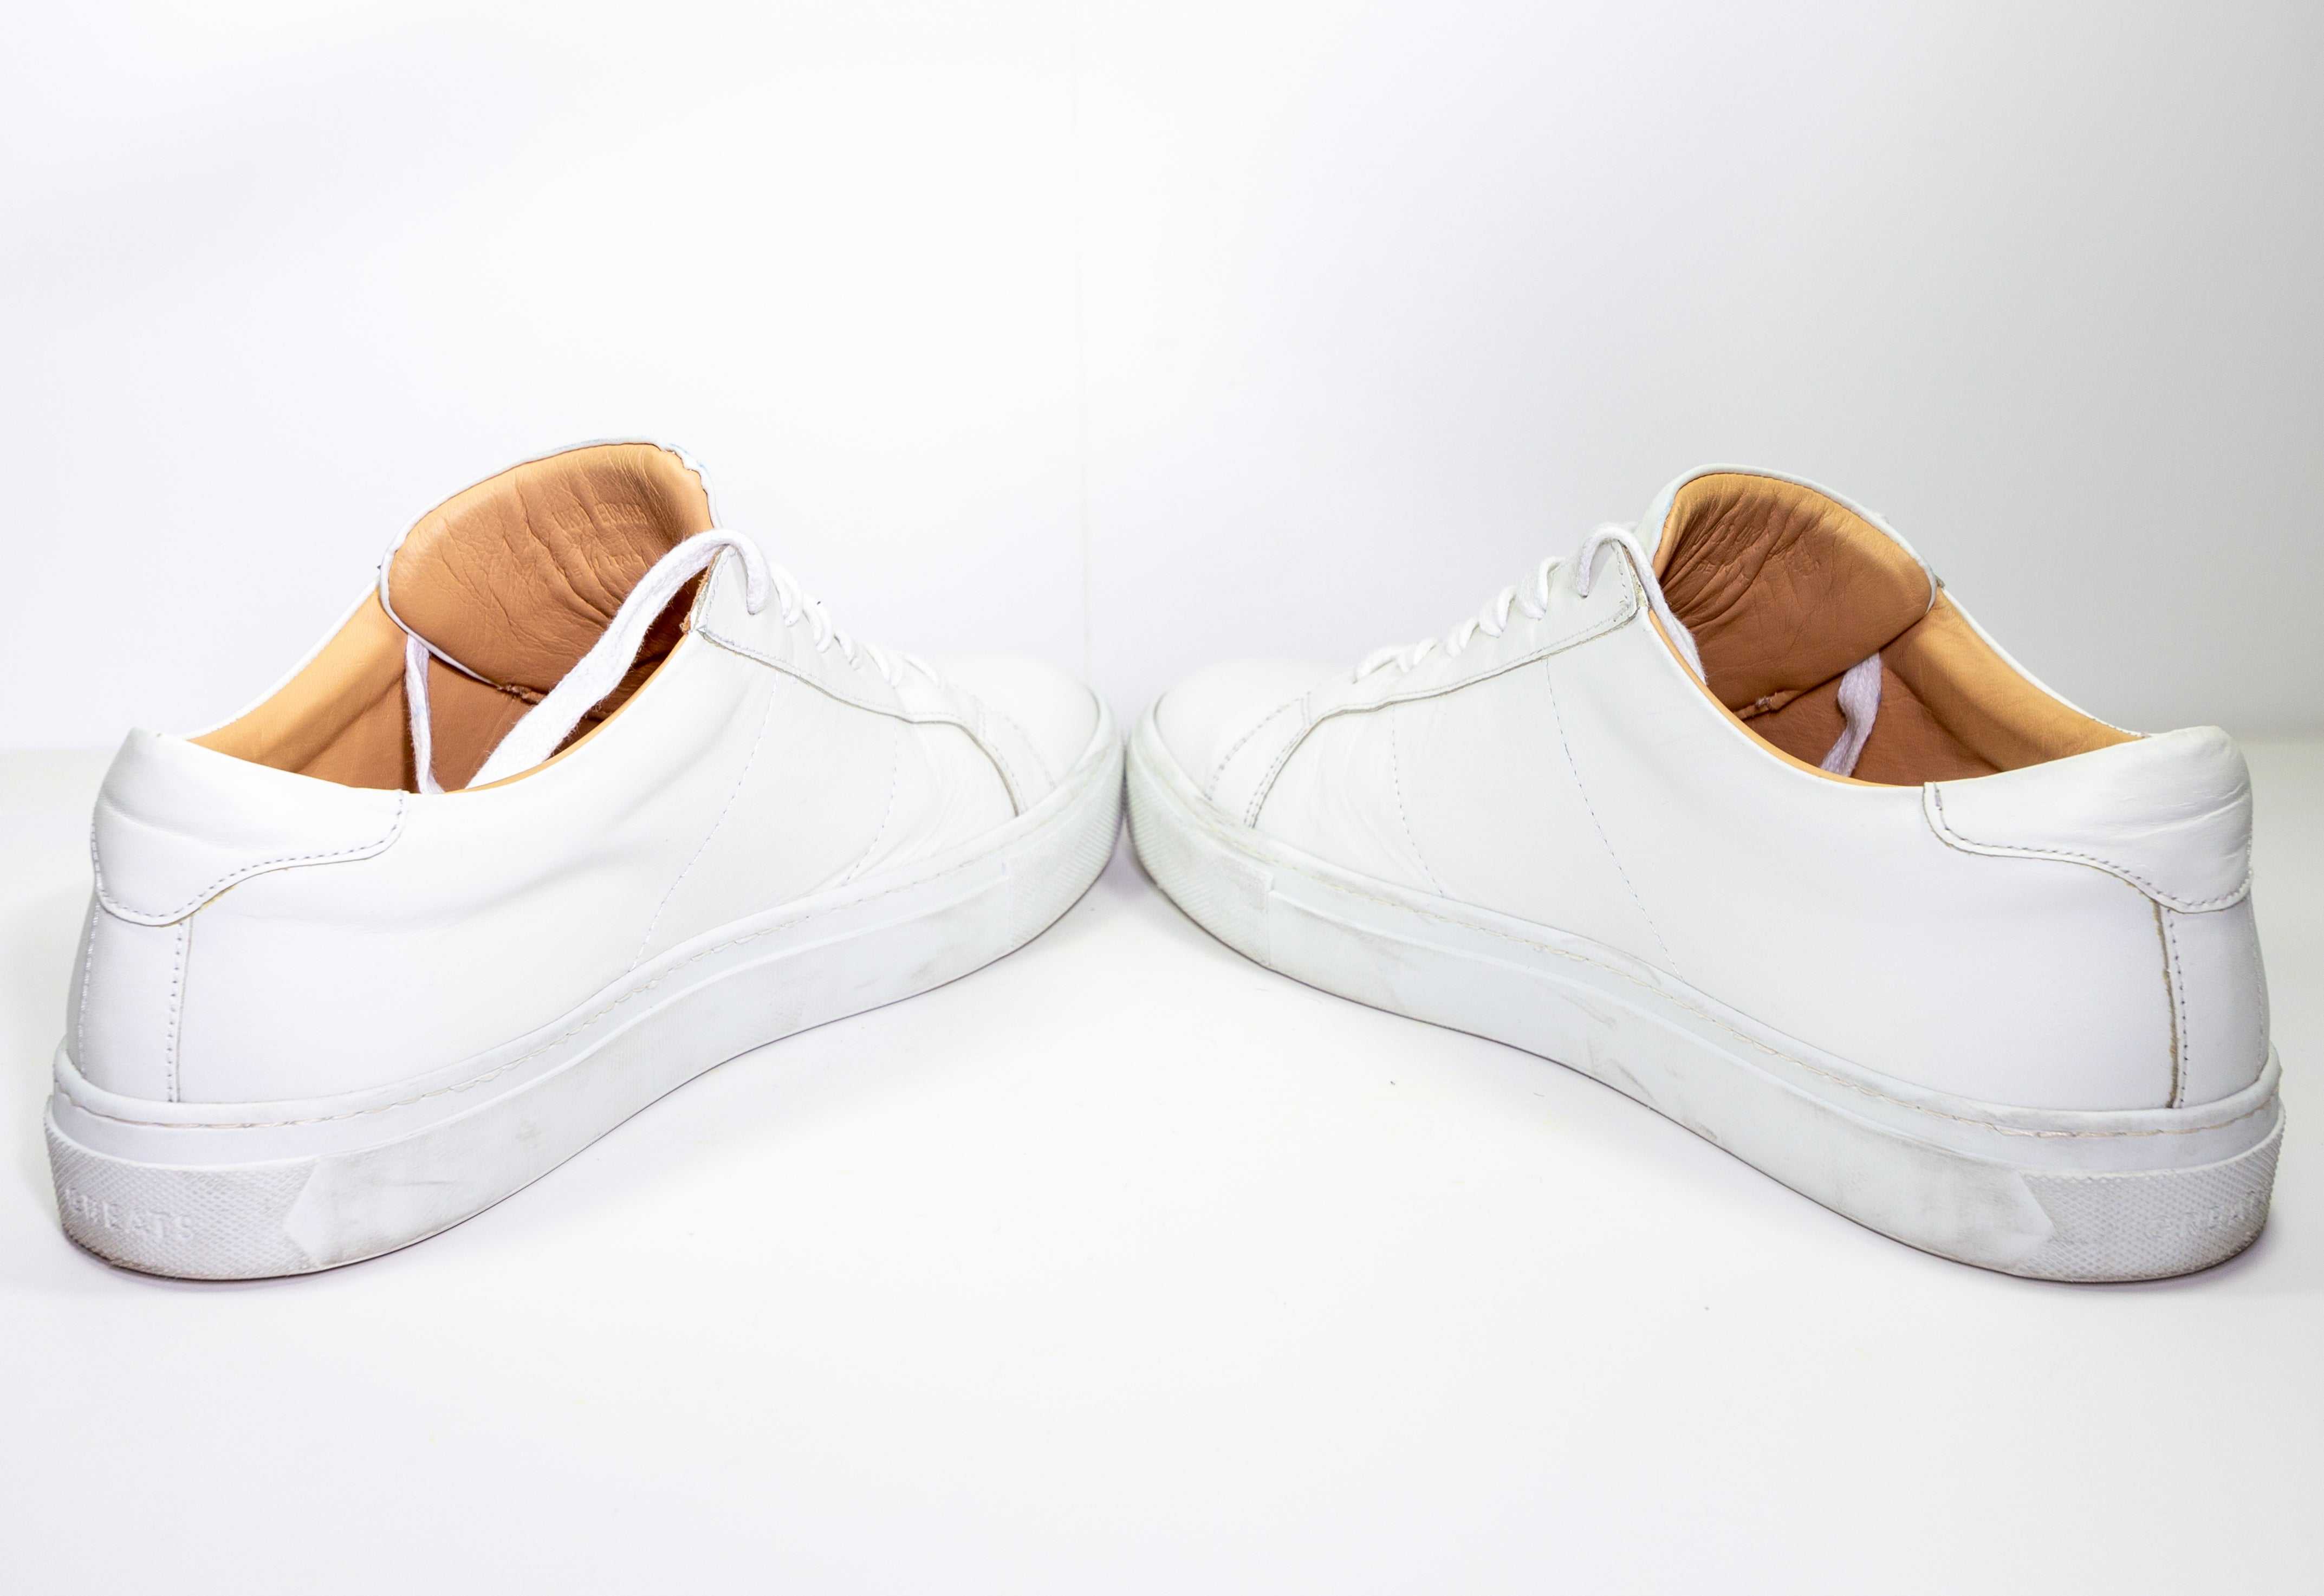 GREATS Brooklyn The Royale Blanco White Mens Size 10.5 Very Good Condition - Vintage Heaven Shop